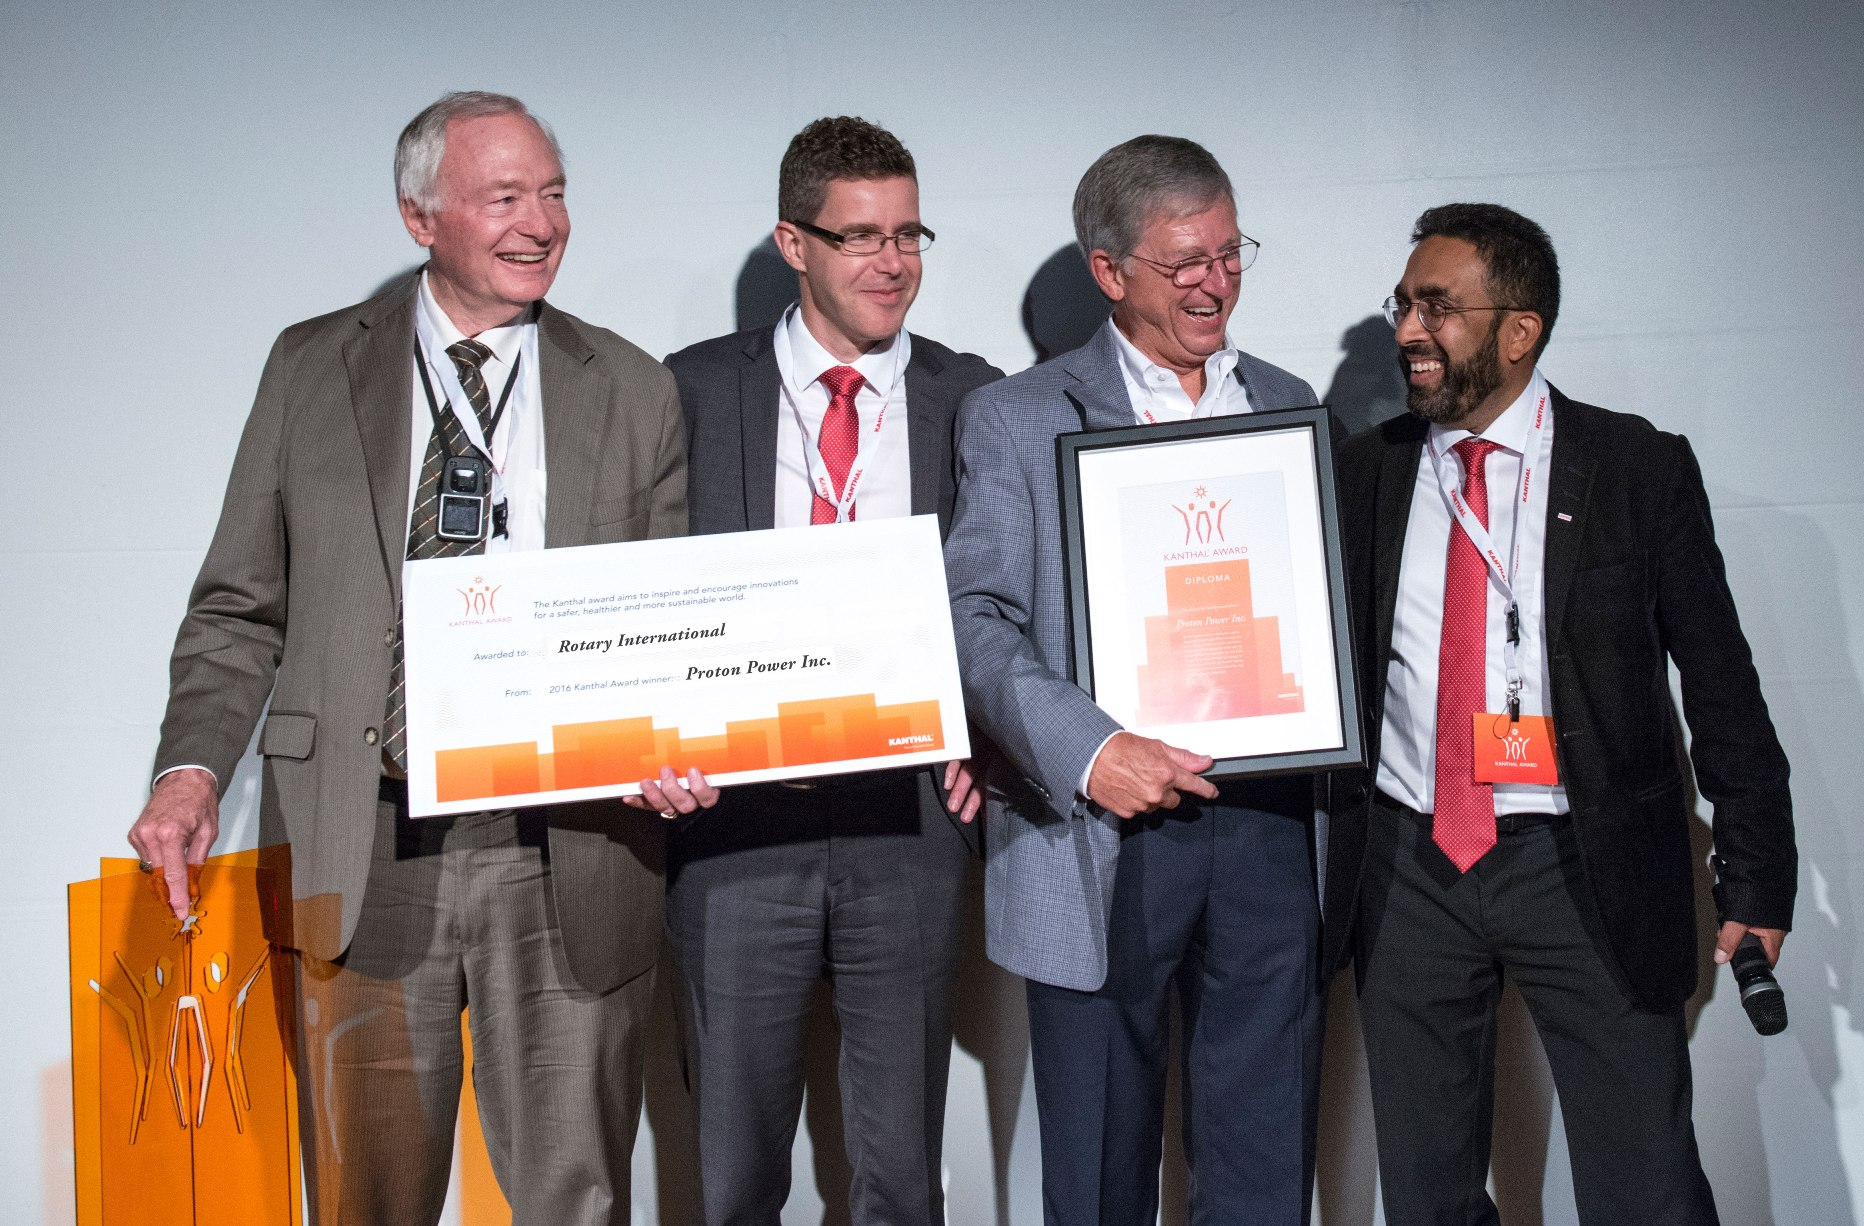 Caption=Kanthal Award 2016 winners: The winners Proton Power. From the left Dr Weaver, Nicklas Nilsson, VP Sandvik Materials Technology, Mr Hensley and Dr Chandrasekaran, Chairman of the Kanthal Award Jury